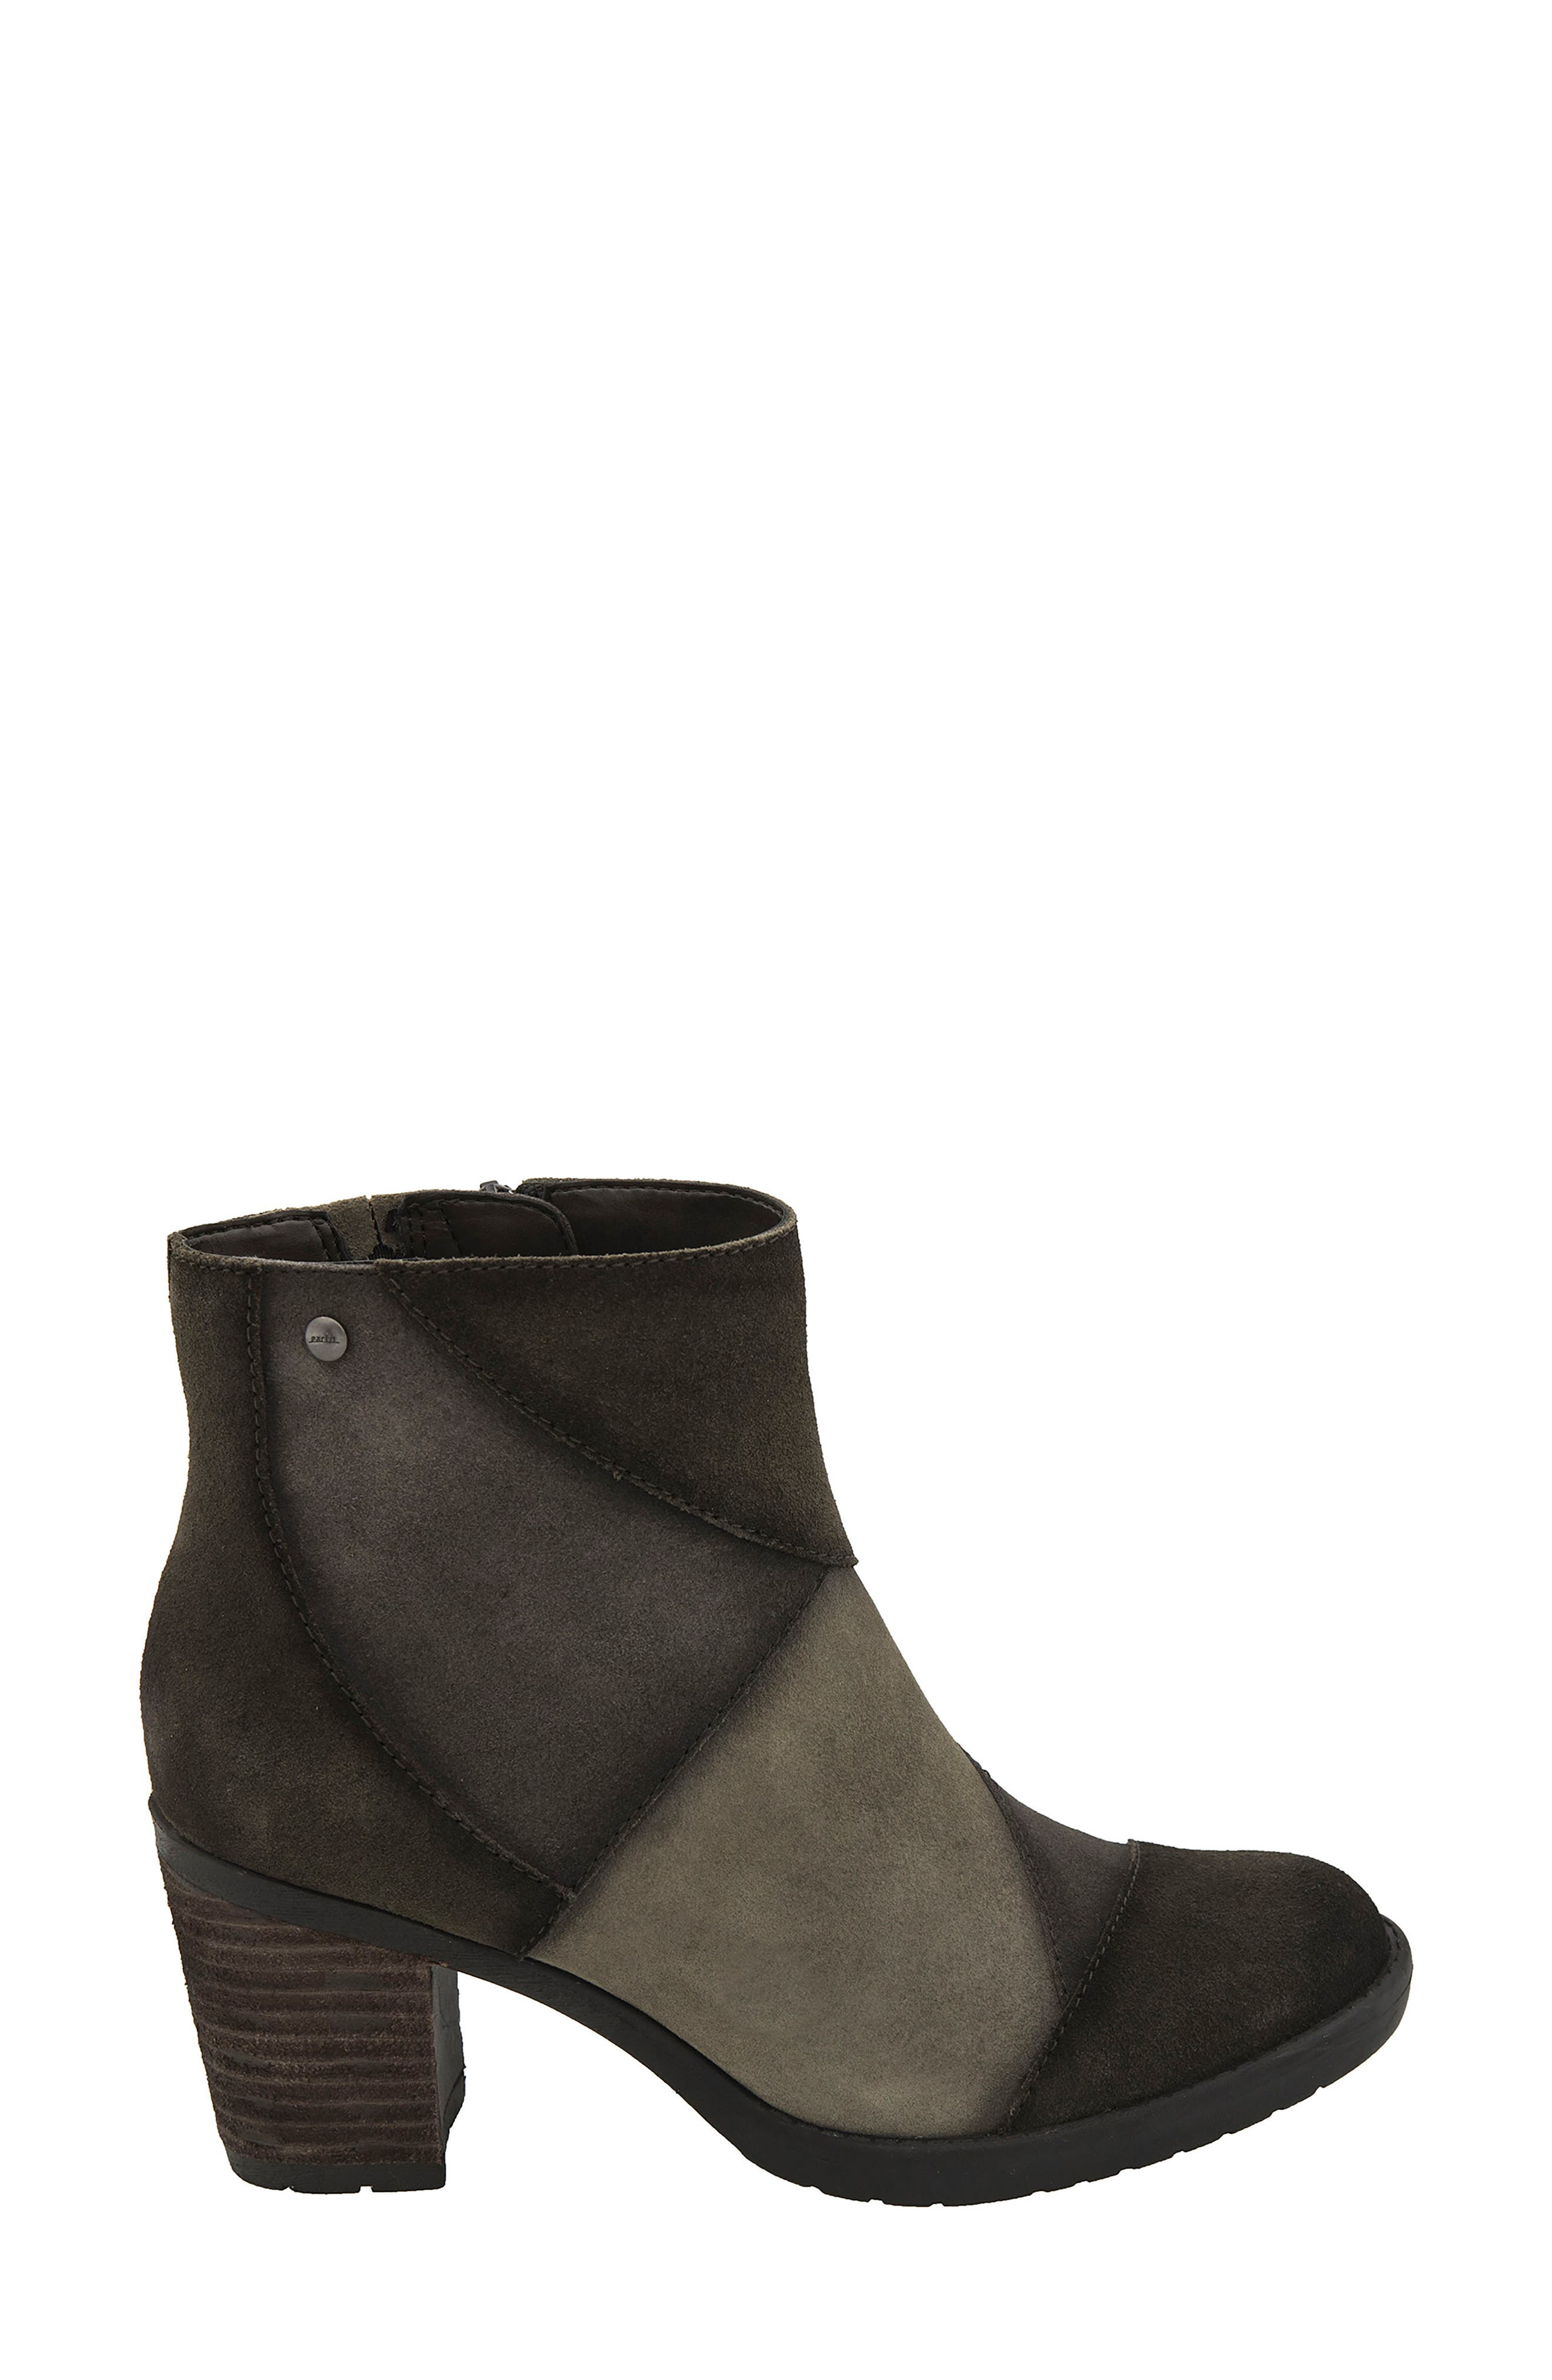 Malta Water Resistant Bootie,                             Alternate thumbnail 3, color,                             Olive Suede